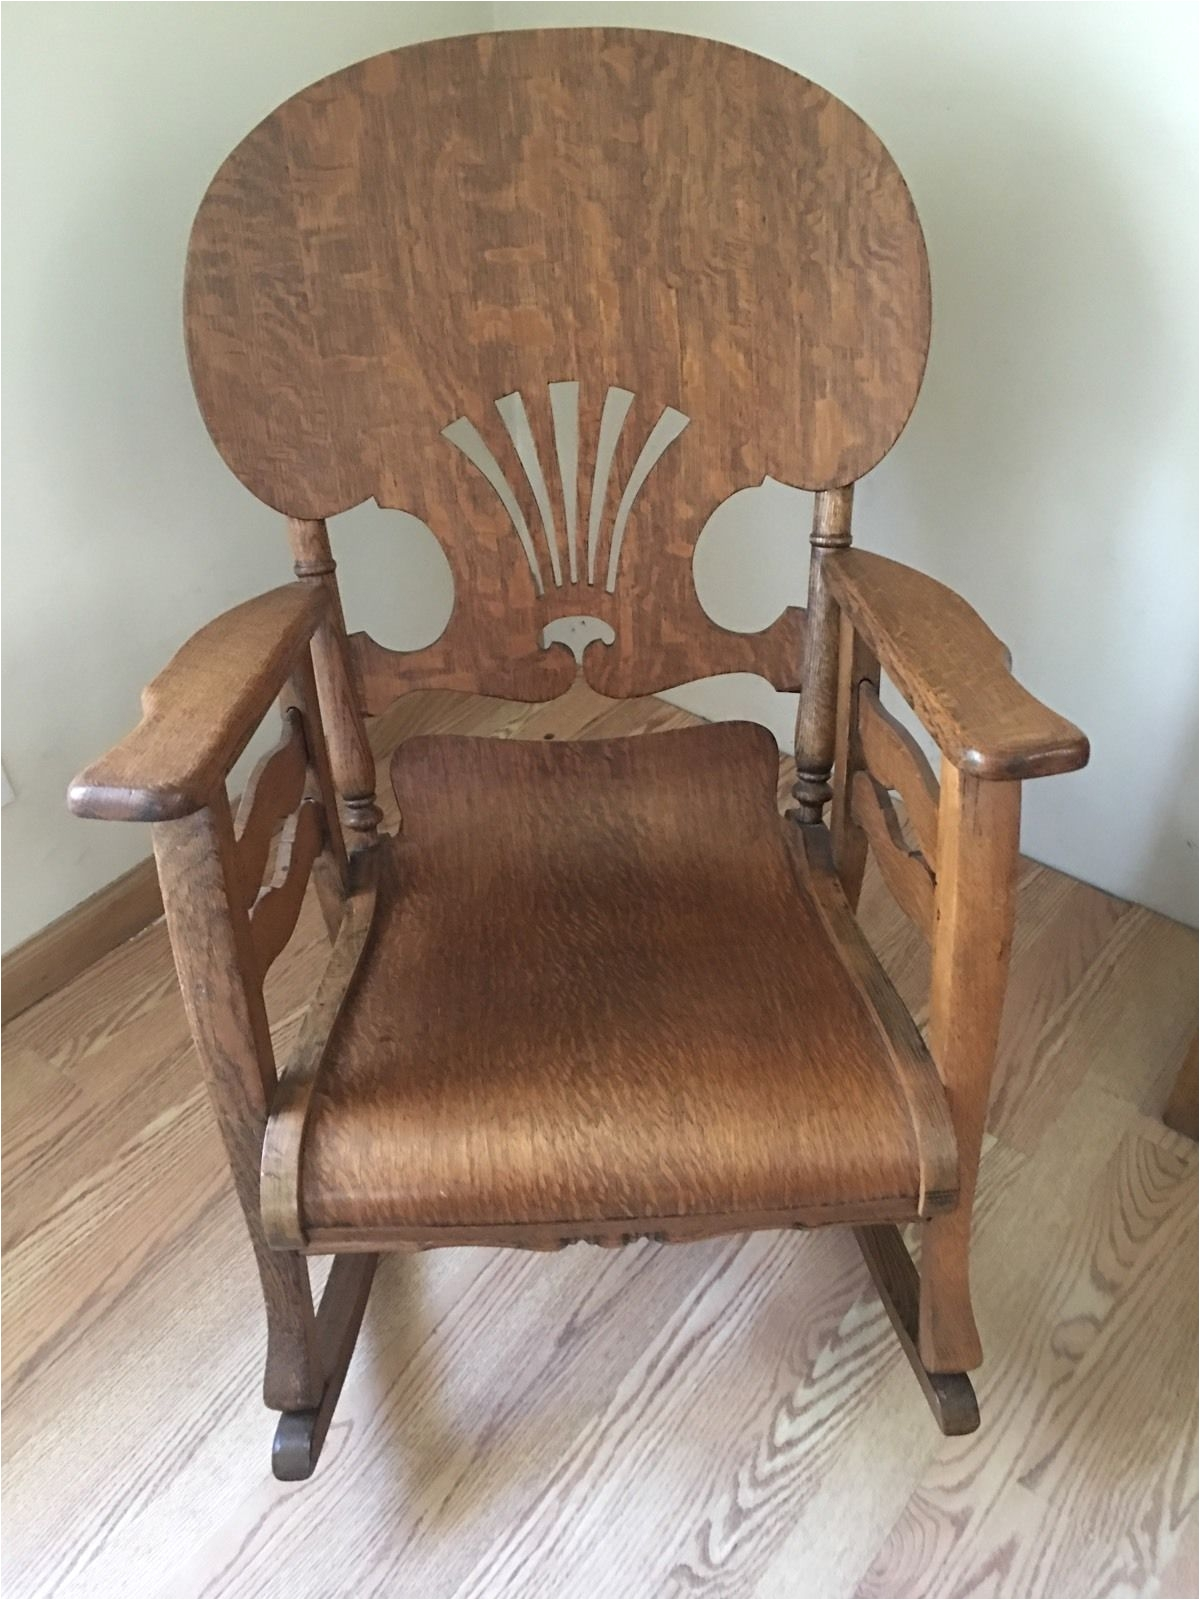 Vintage Sewing Chair with Storage original Antique Primitive Press Back Rocking Chair 1890 1900 S